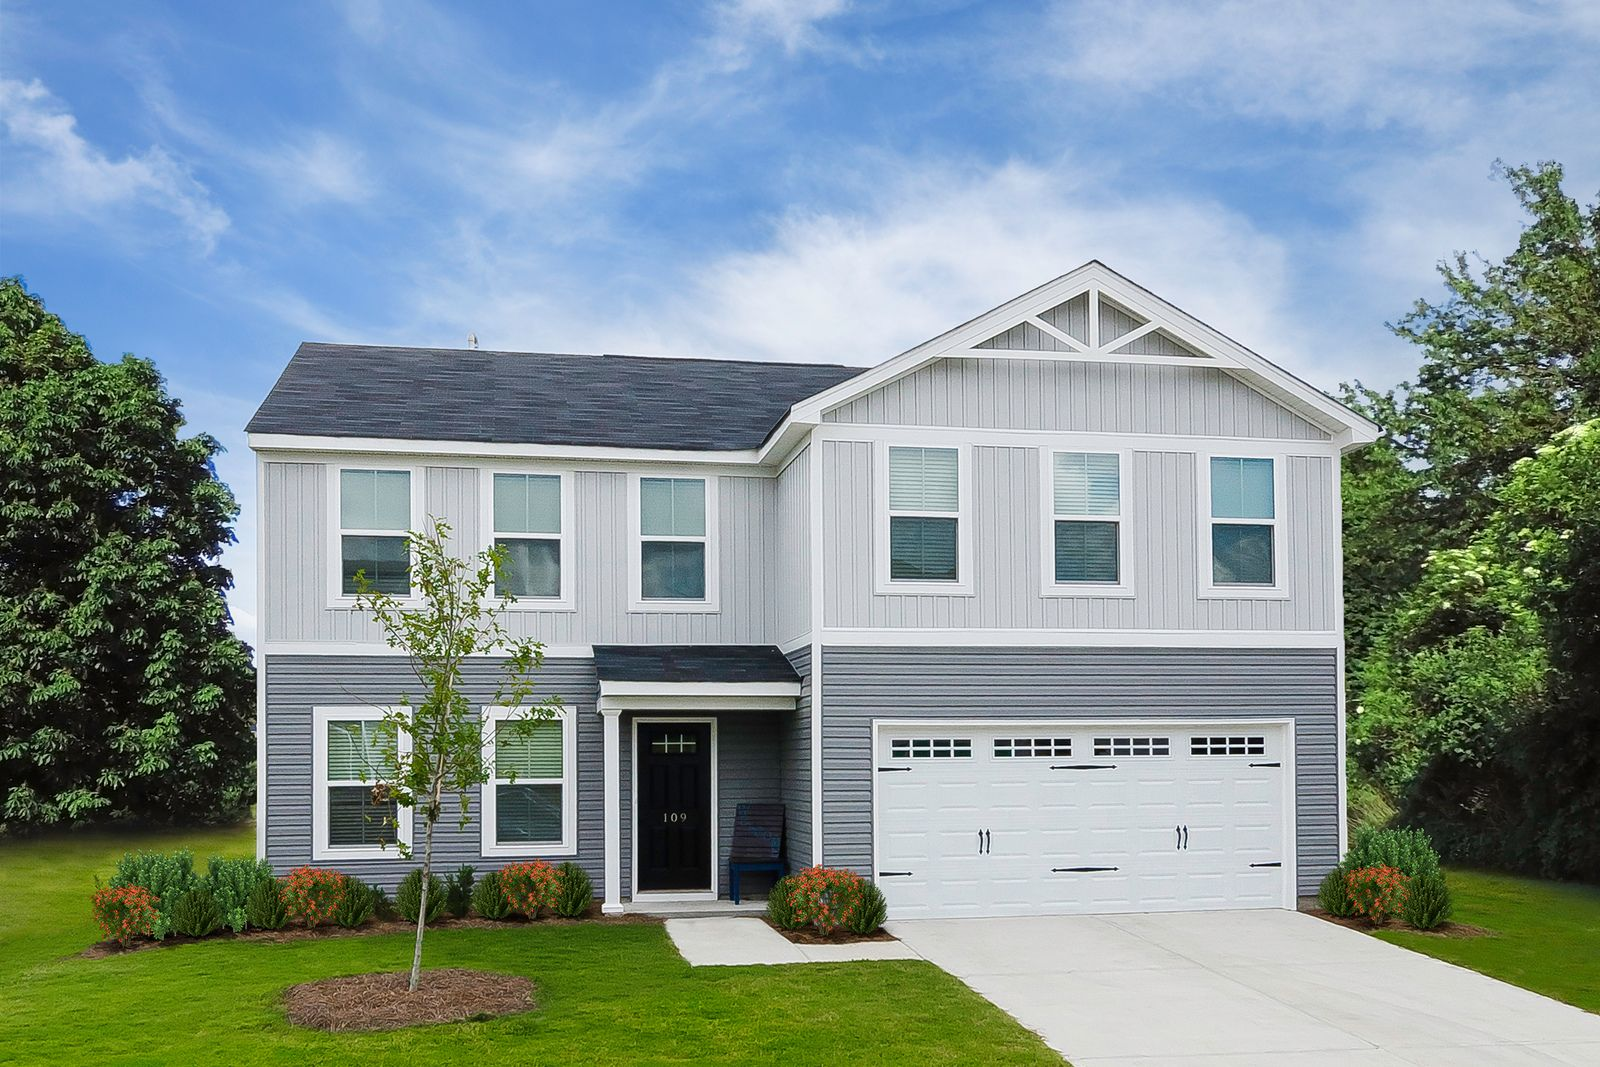 Own a brand new home for less than rent with ALL appliances included!:Limited homesites remain,schedule a visitto own a new home with all of your appliances included!